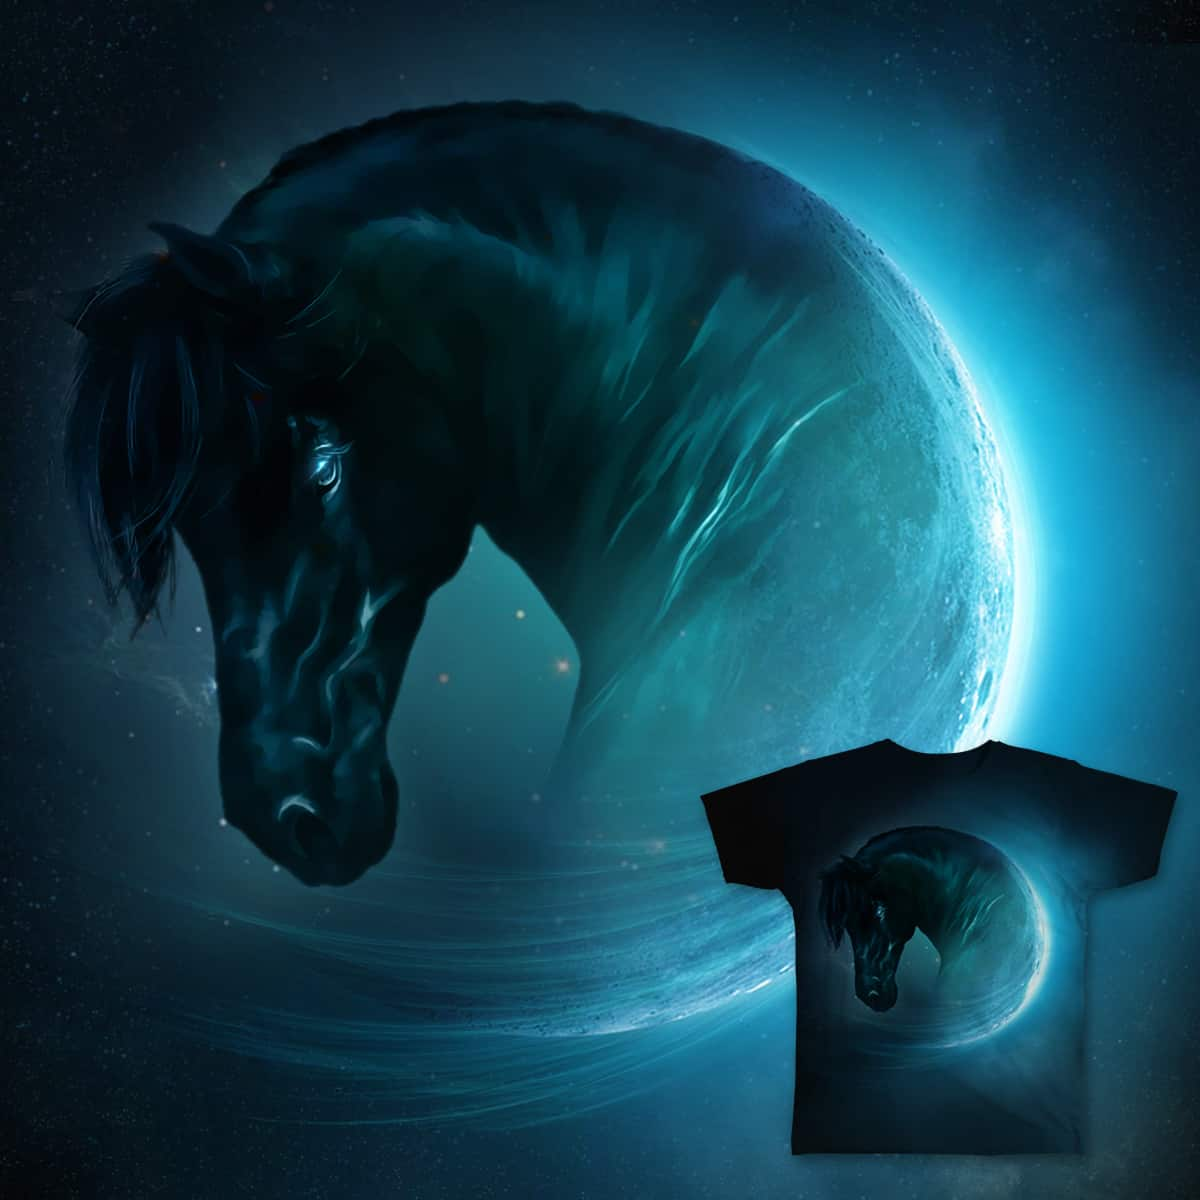 The Lucky Horse by LeoRico_26 on Threadless